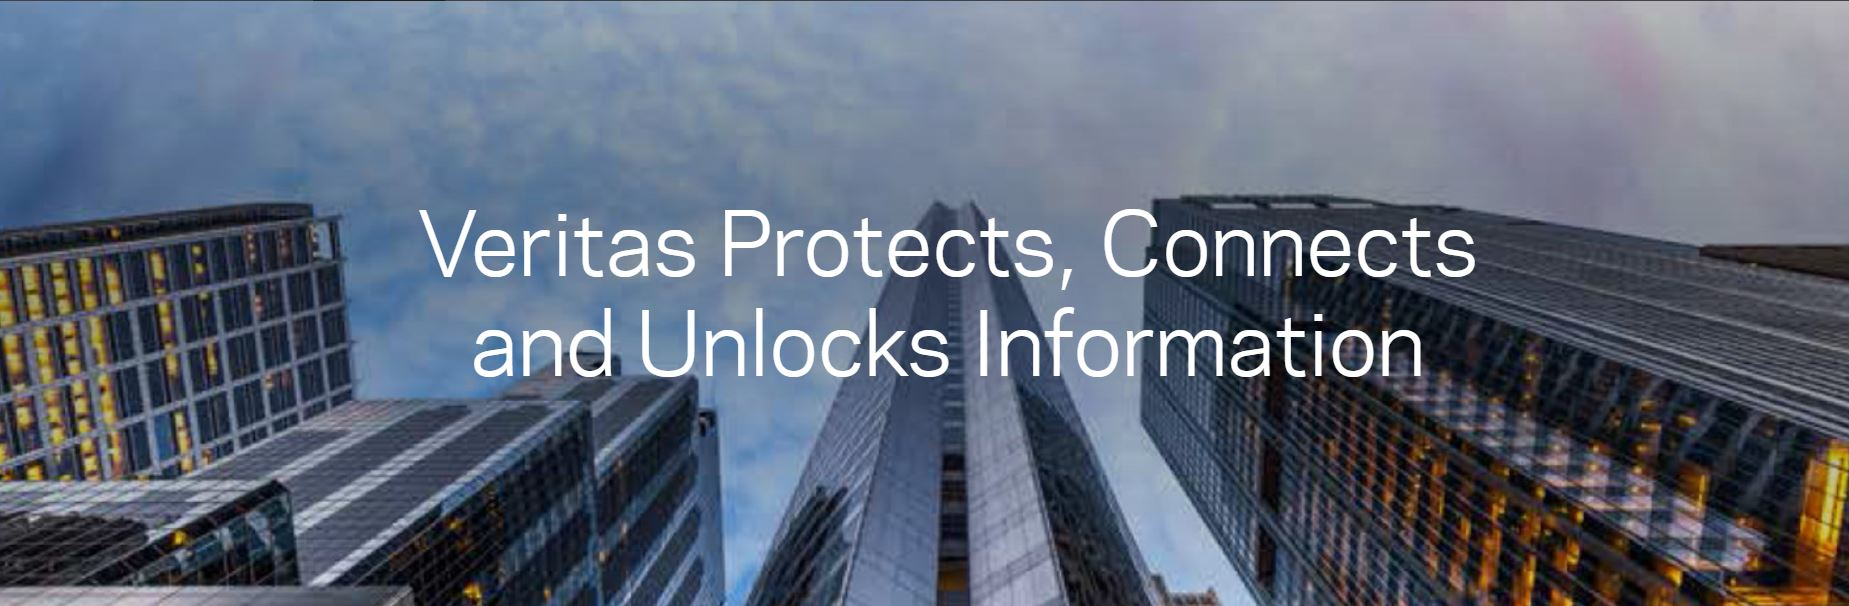 Veritas Protects, Connects and Unlocks Information